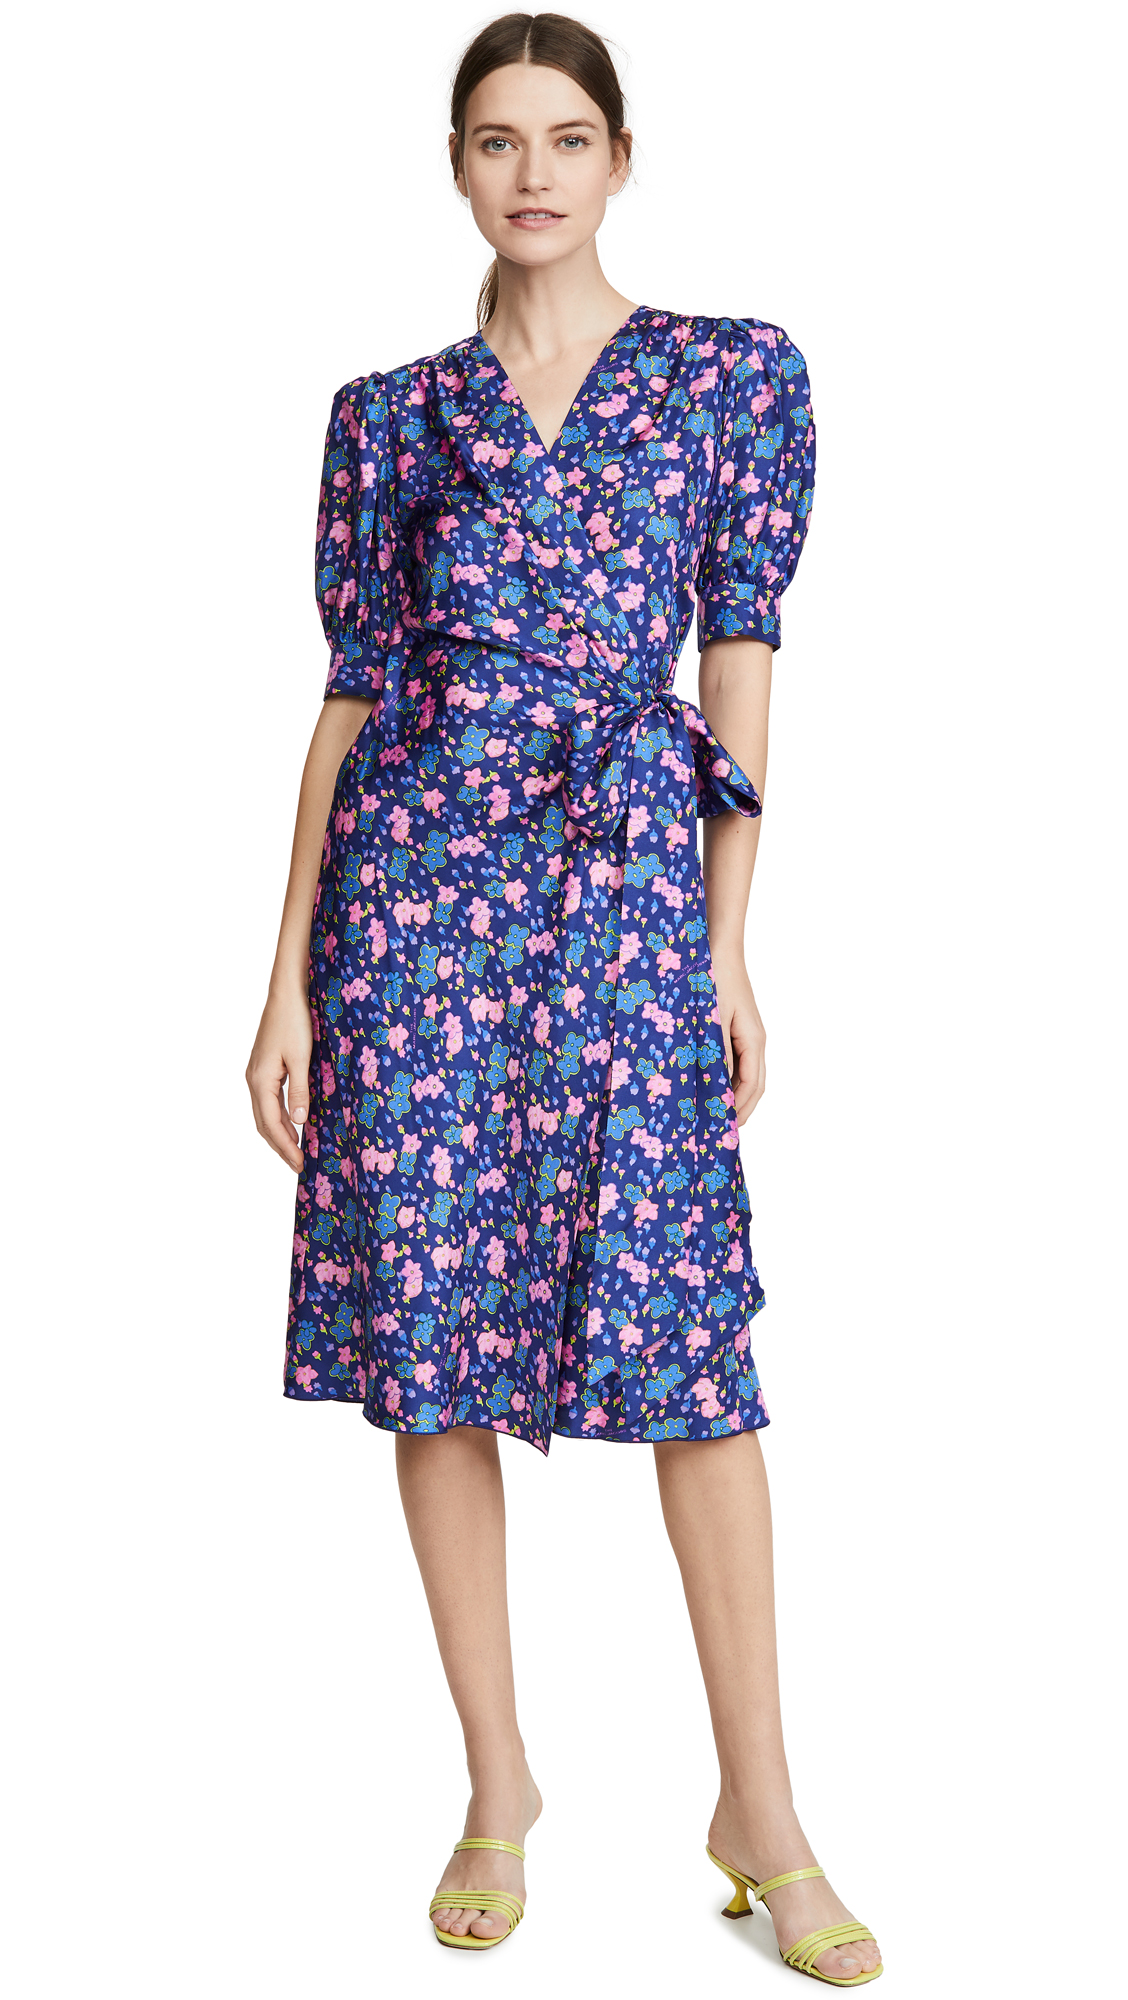 The Marc Jacobs The Wrap Dress - 40% Off Sale